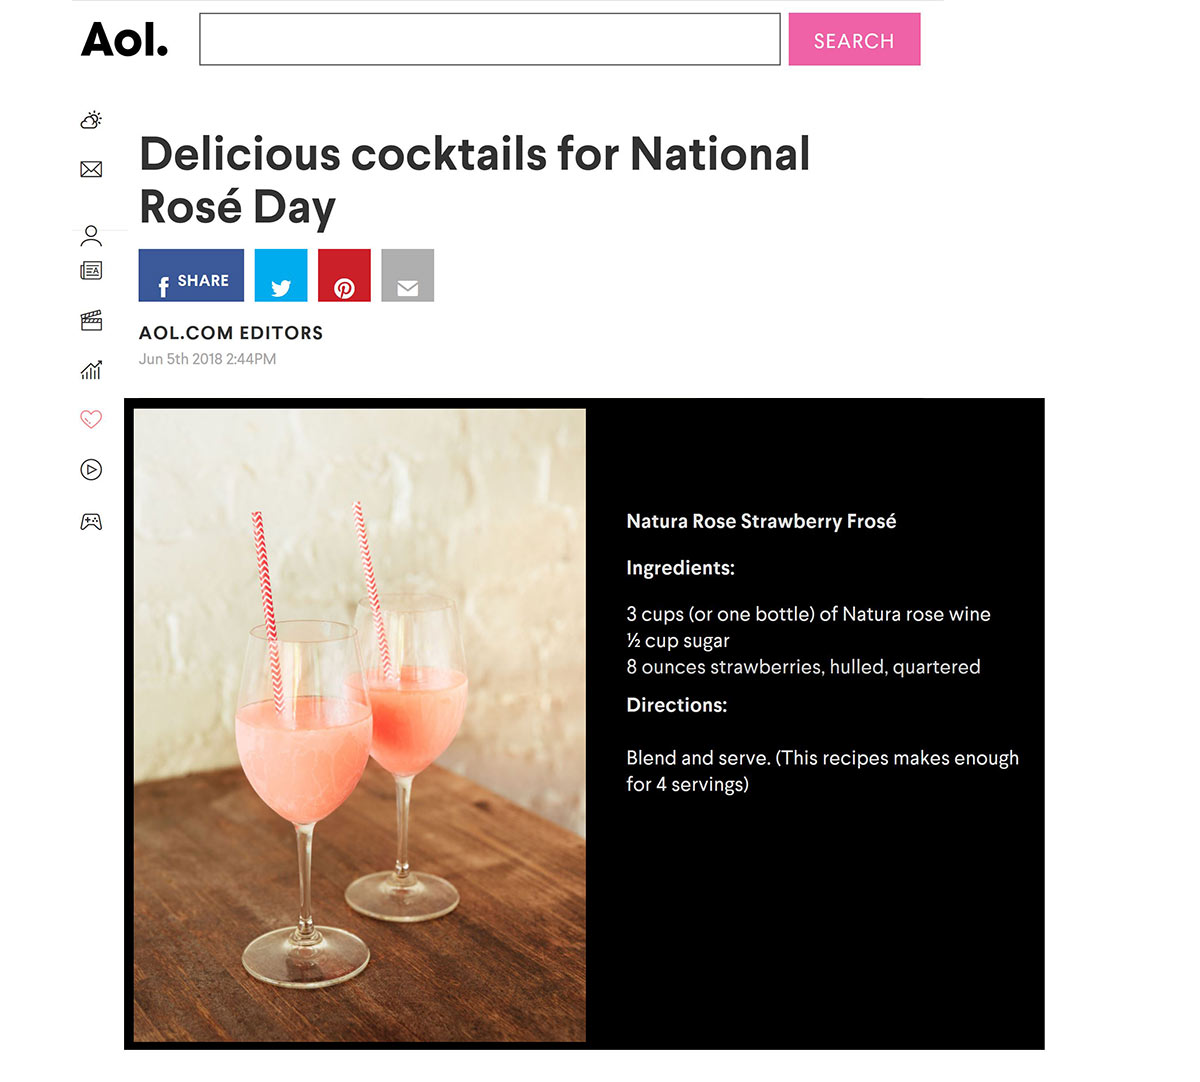 Natura Rose Strawberry Frose cocktail recipe in AOL